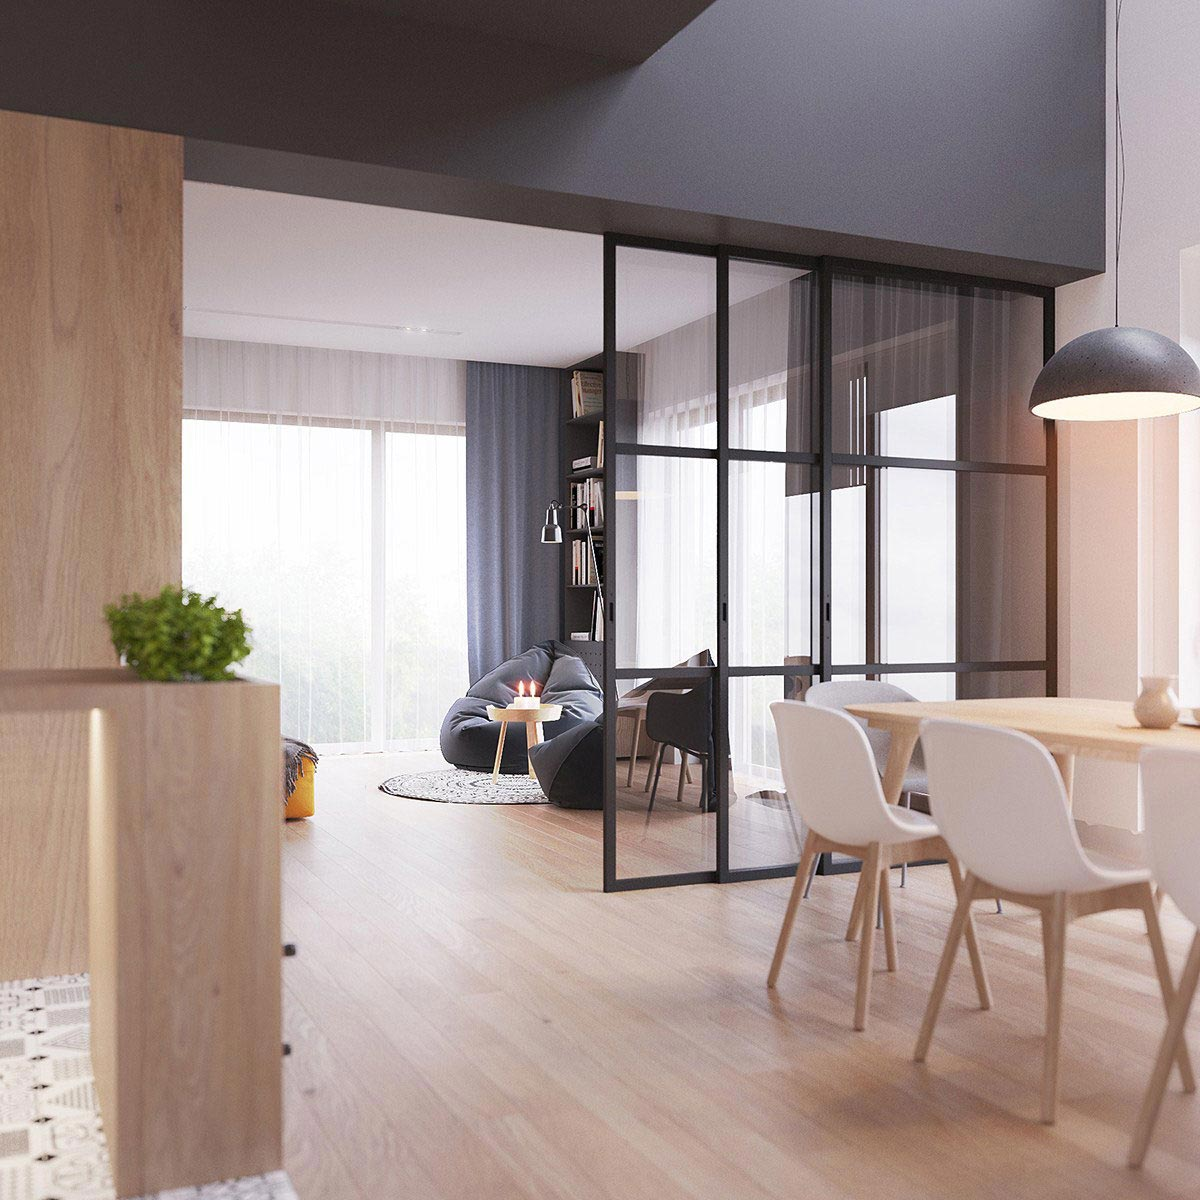 Two Storey Apartment Contemporary Scandinavian Style Young Family 07